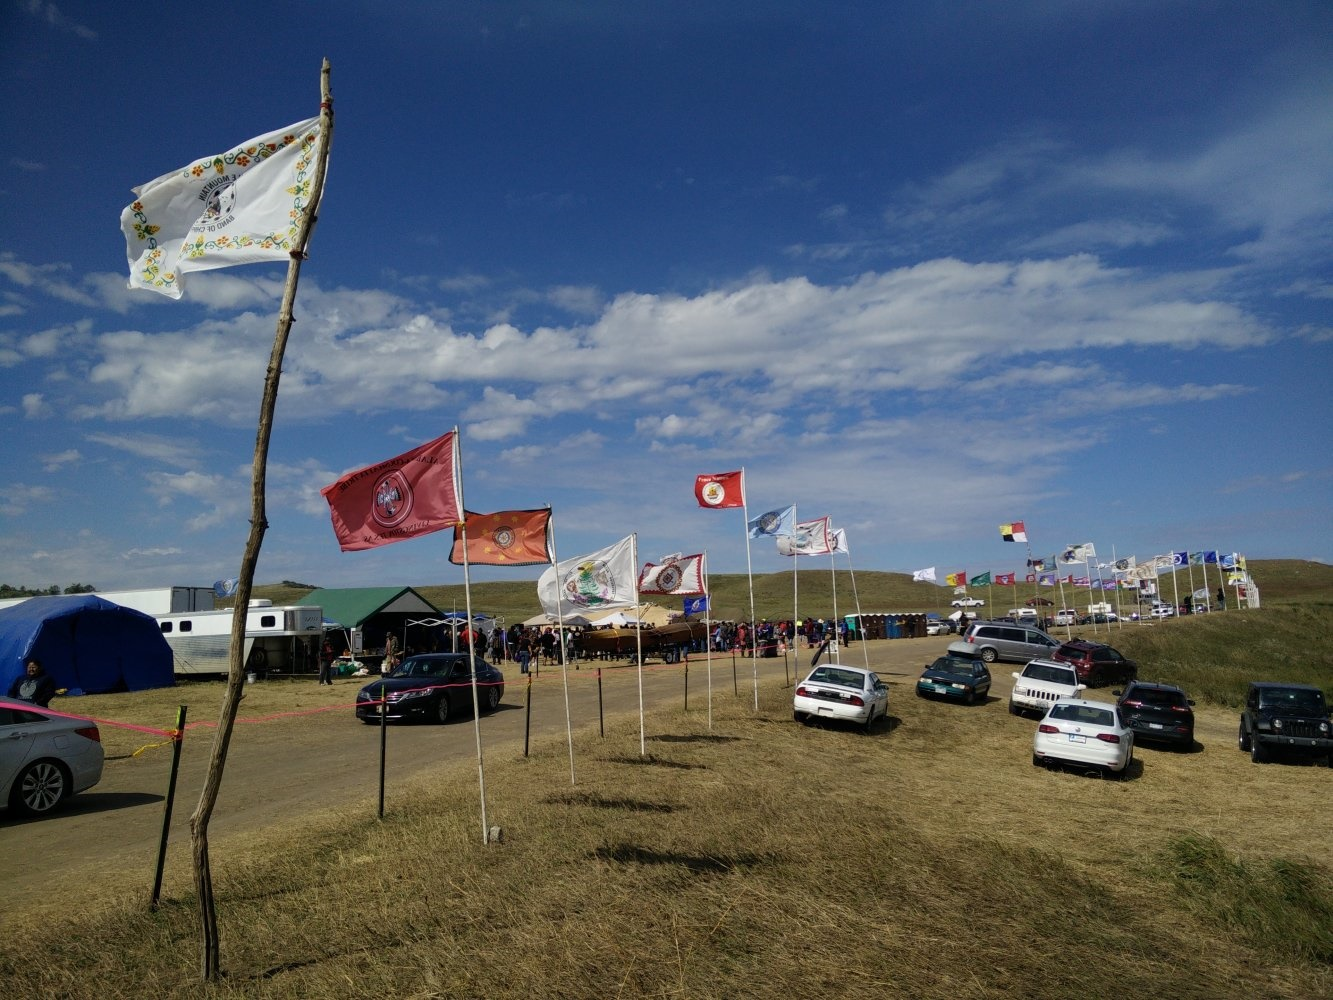 In 2015, thousands gathered in North Dakota to demonstrate against the Dakota Access pipeline in the year's most visible public protest in the United States. Opponents of the Keystone XL pipeline are preparing to renew the fight against a suddenly revived project. Photo courtesy of Creative Commons